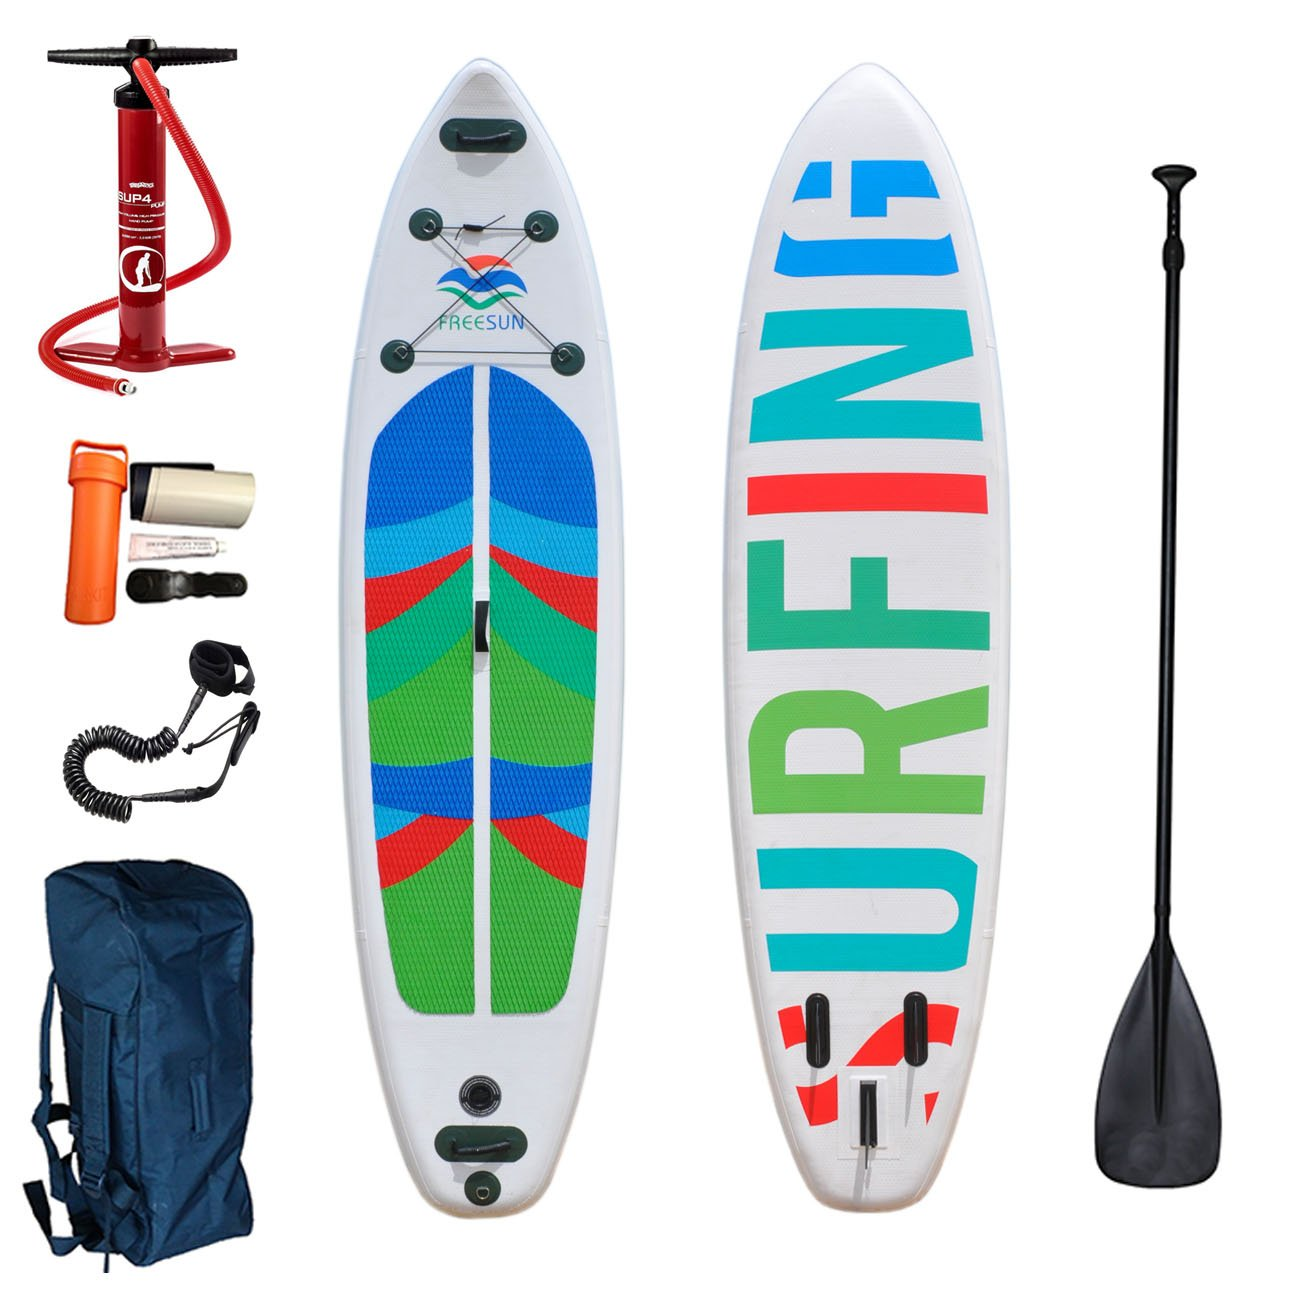 TERAISE 10' Inflatable Tour Stand Up Paddle Board(6''Thick) Isup Package︱Includes Adjustable Paddle,Travel Backpack,Pump,Coil Leash